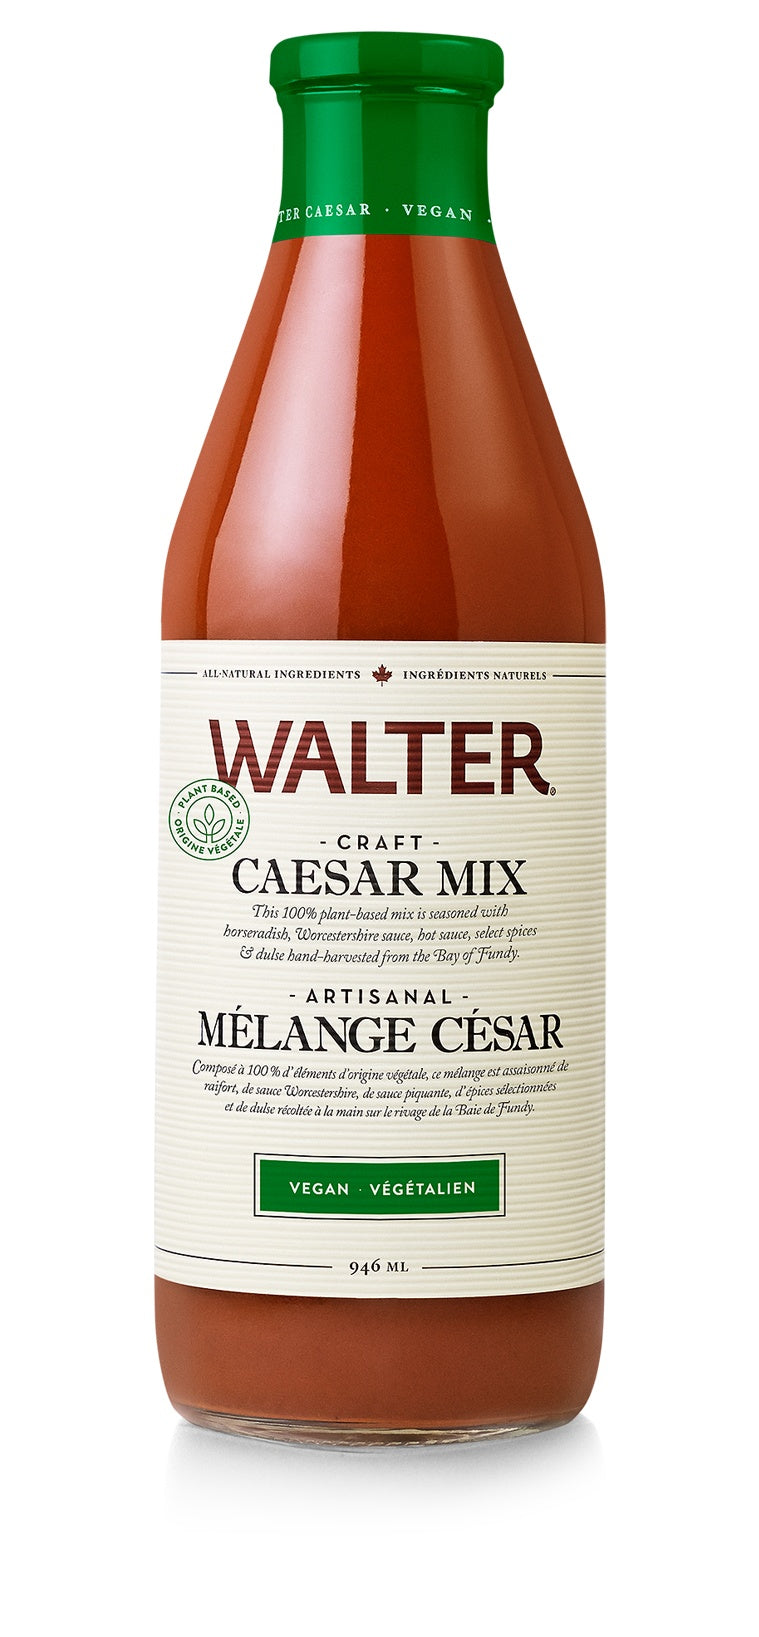 Food & Drink - Walter - Caesar Mix - Vegan, 946ml